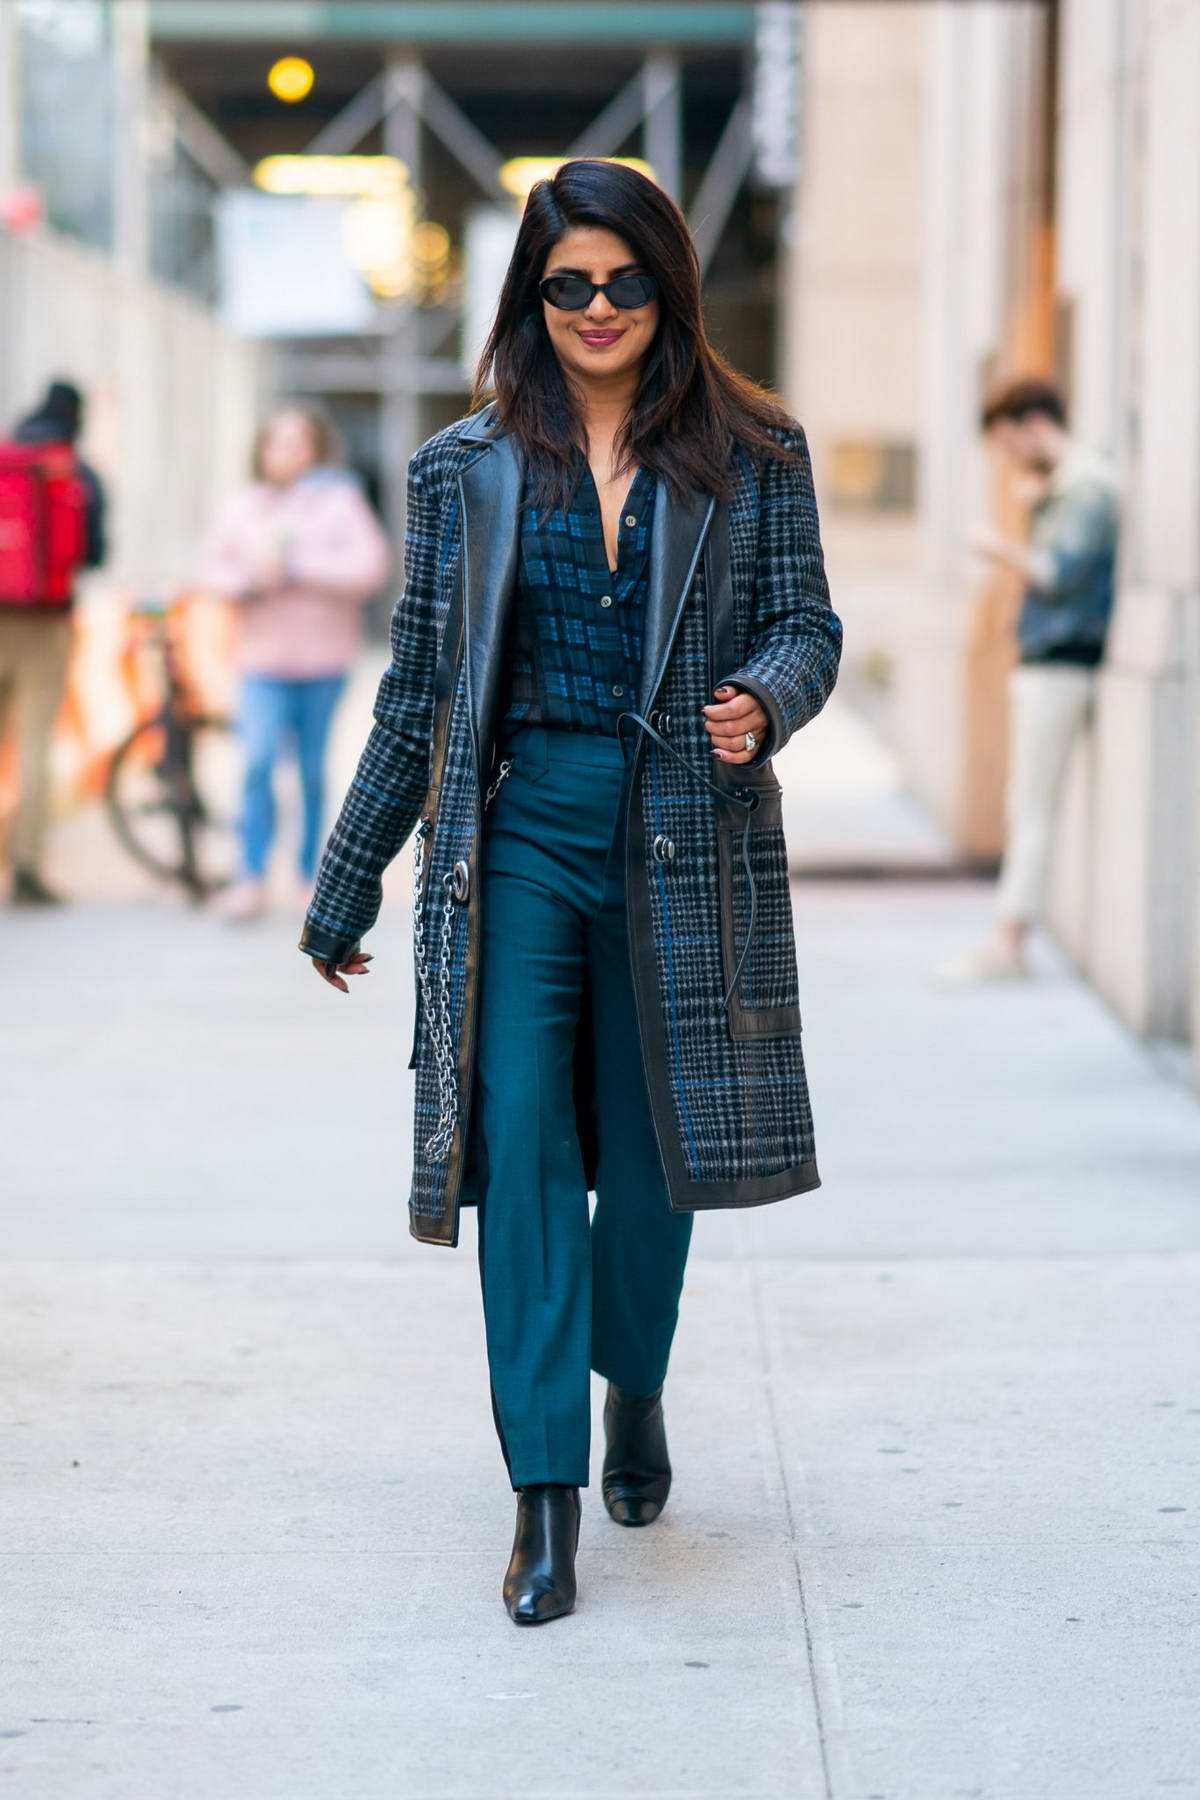 Priyanka Chopra seen out and about in a blue ensemble in Tribeca, New York City